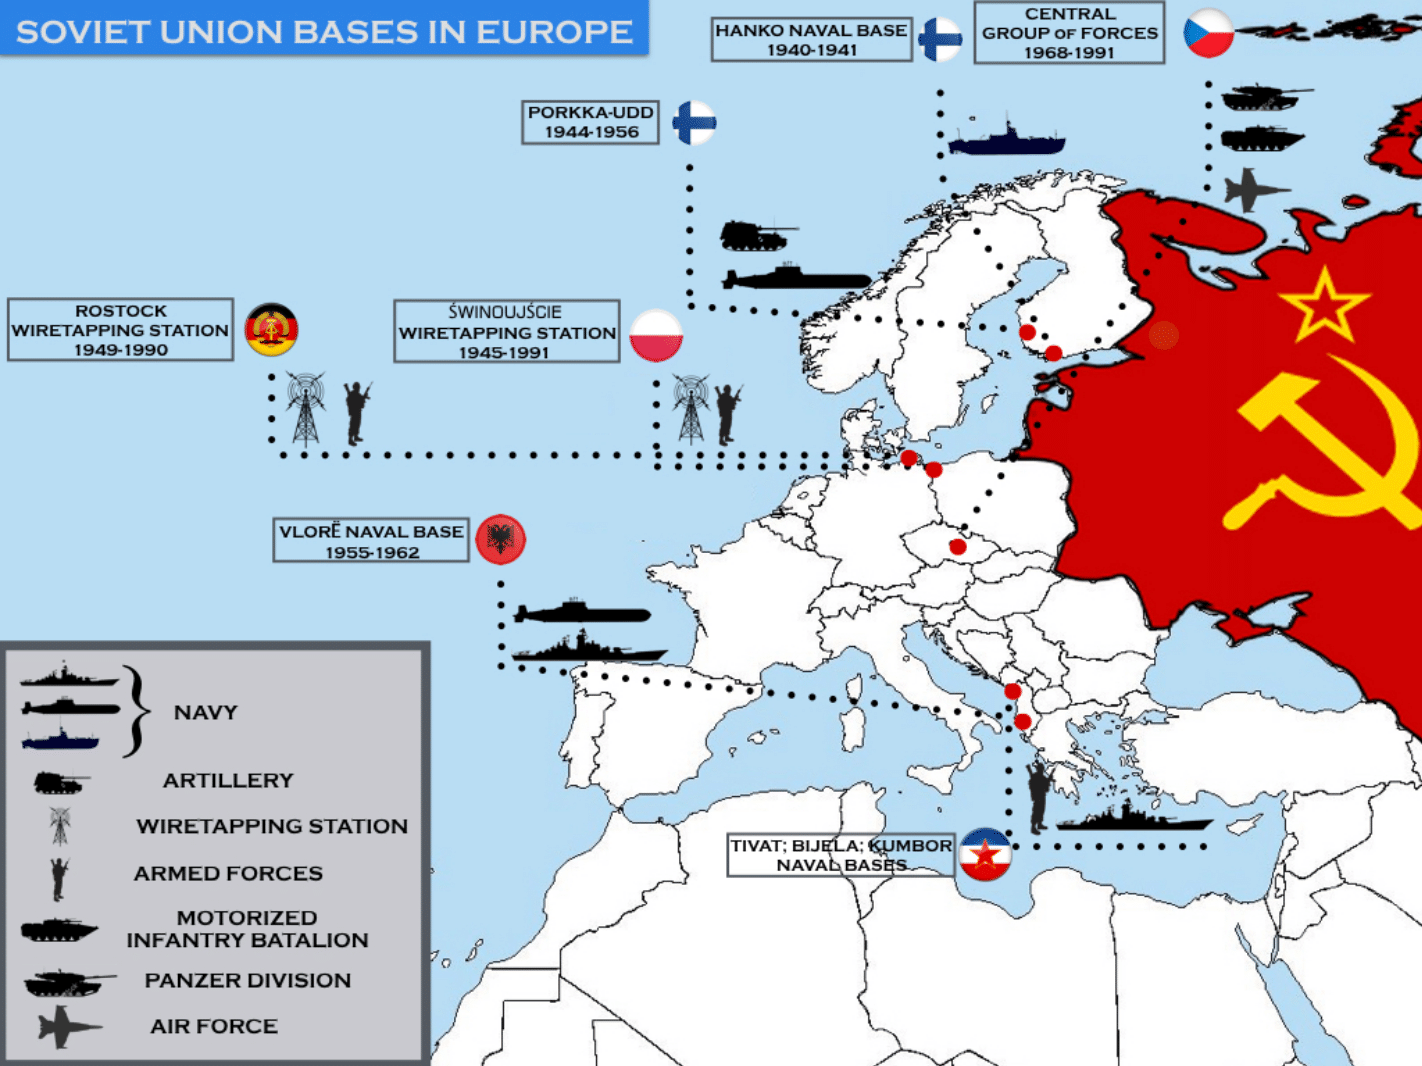 soviet union bases in eu